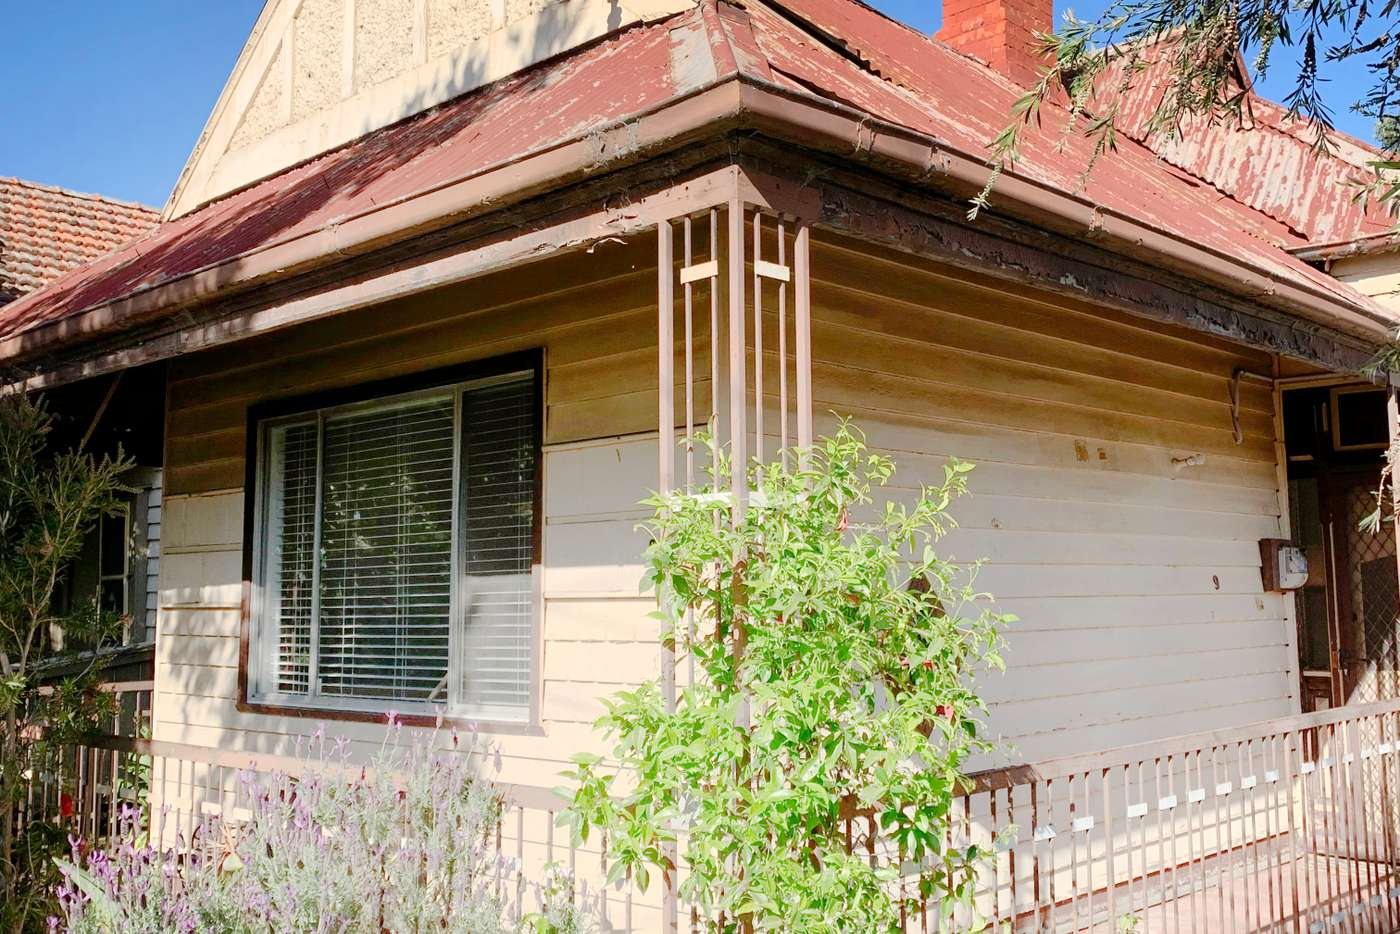 Main view of Homely house listing, 9 Lygon Street, Coburg VIC 3058